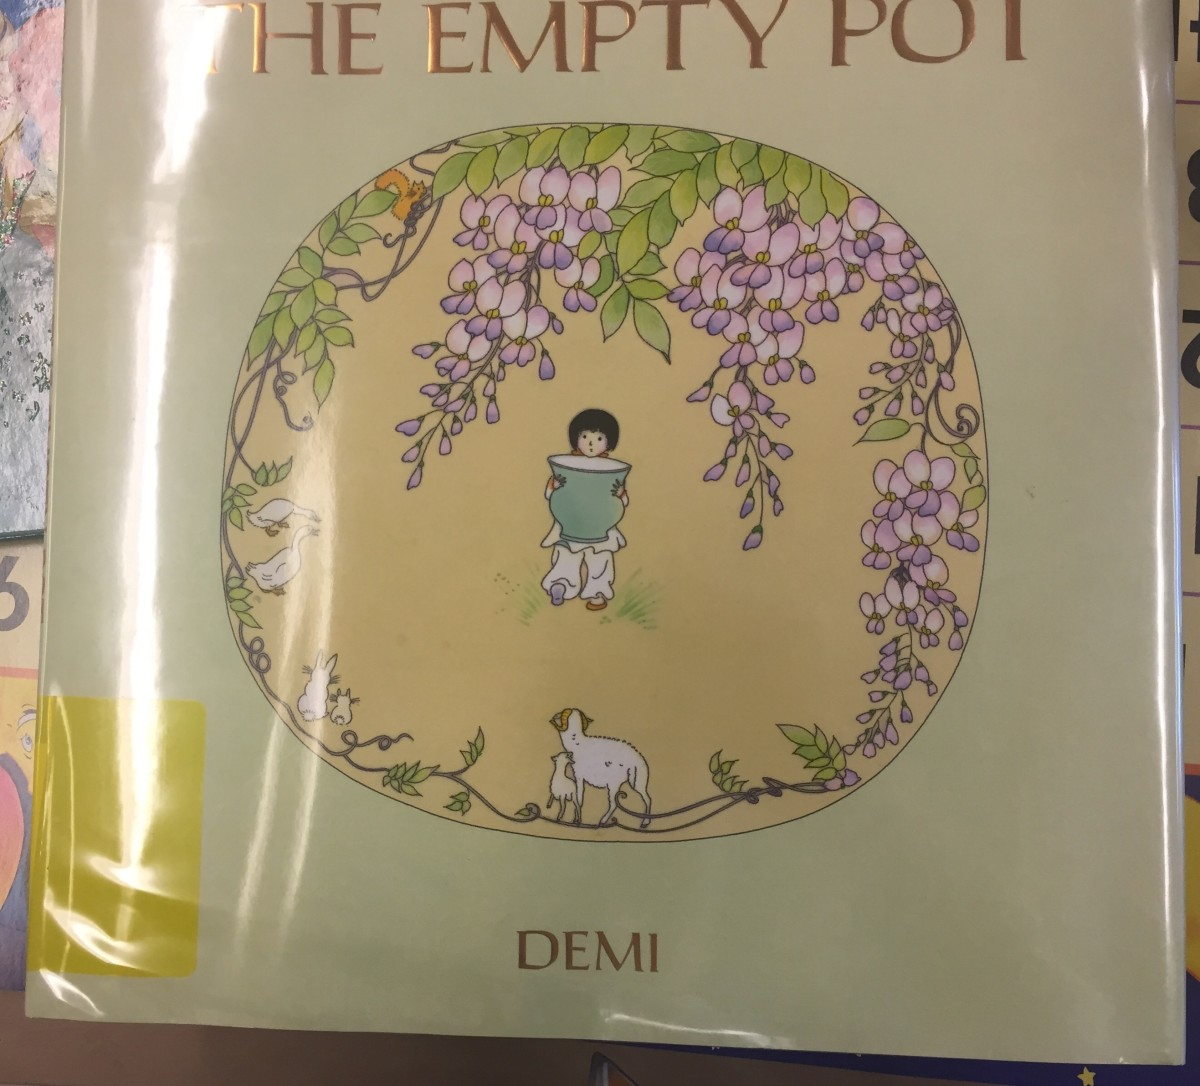 Old wisteria vines are common in China and Japan. On the cover of this book about a Chinese boy who is gifted with a talent for gardening, wisteria is showcased.